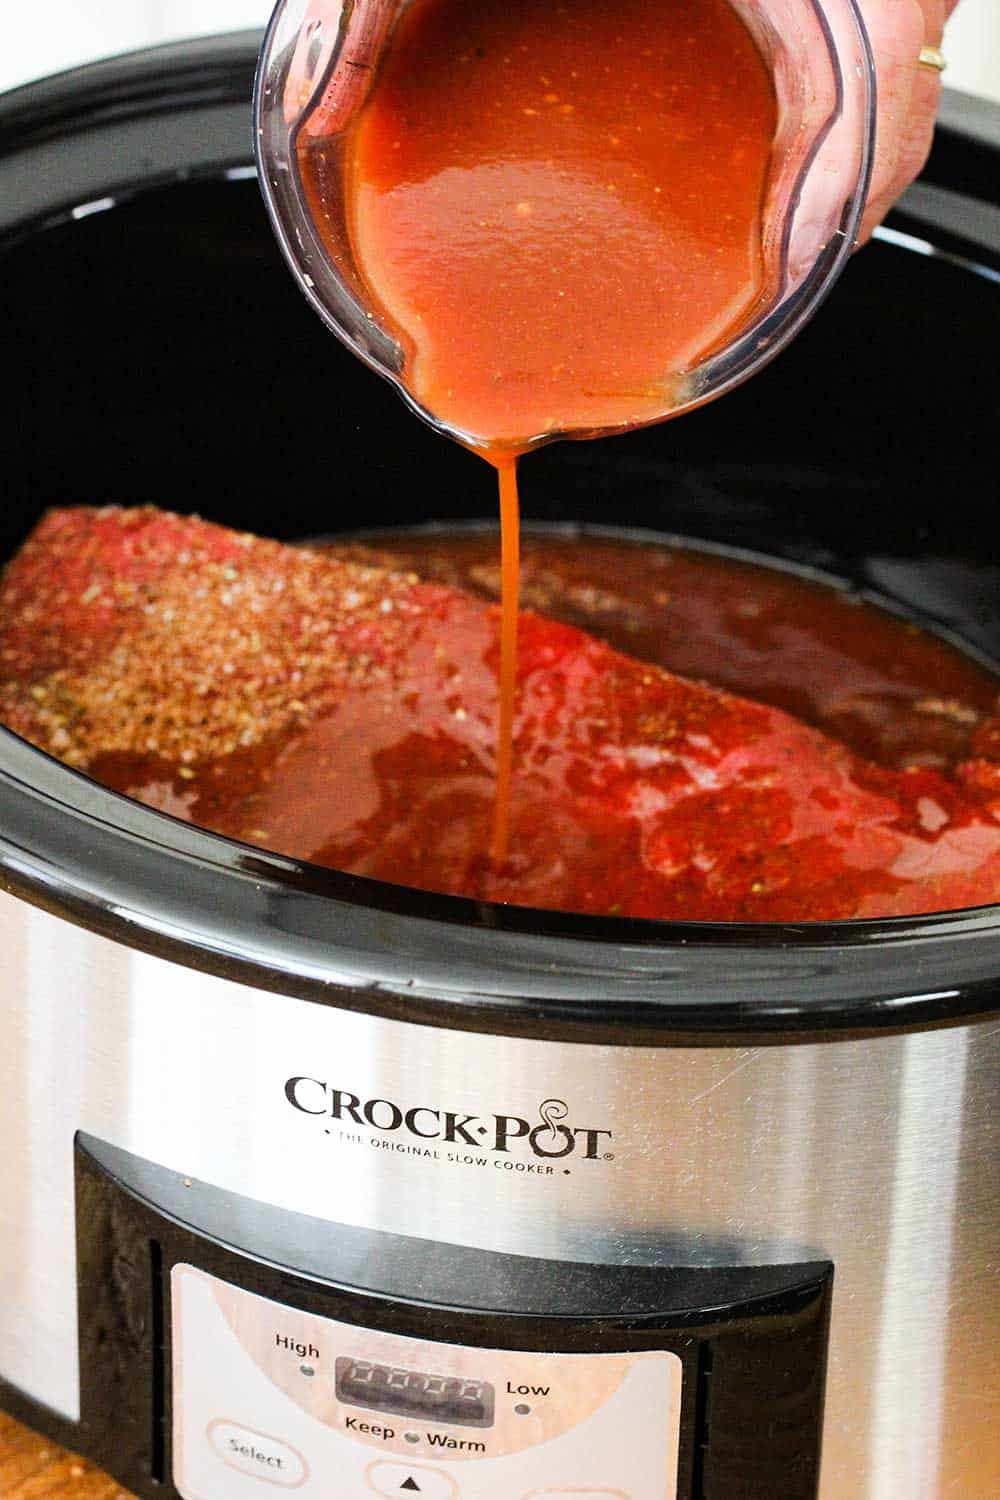 Homemade BBQ sauce being pour over a brisket in a Crock-Pot slow-cooker for BBQ brisket sandwiches.